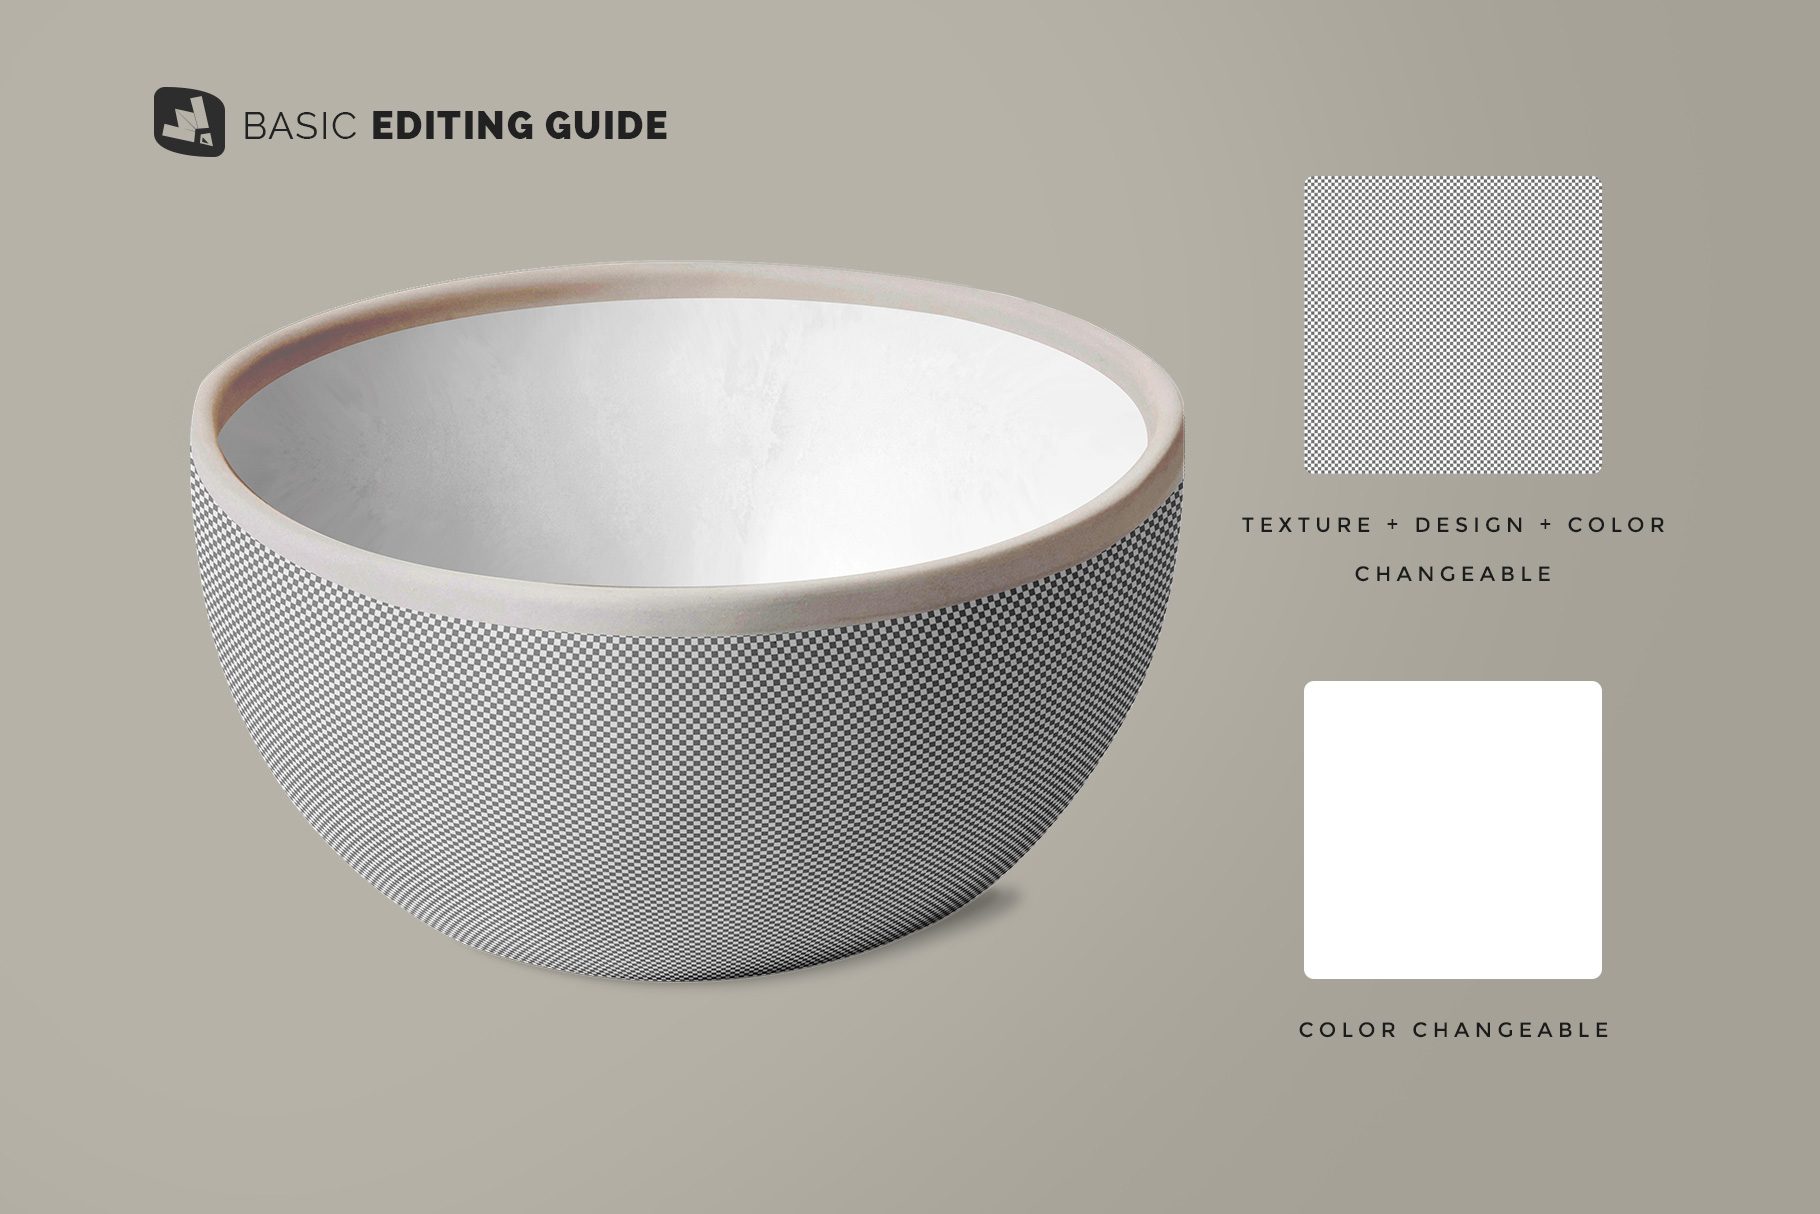 editability of the front view bowl mockup vol.2